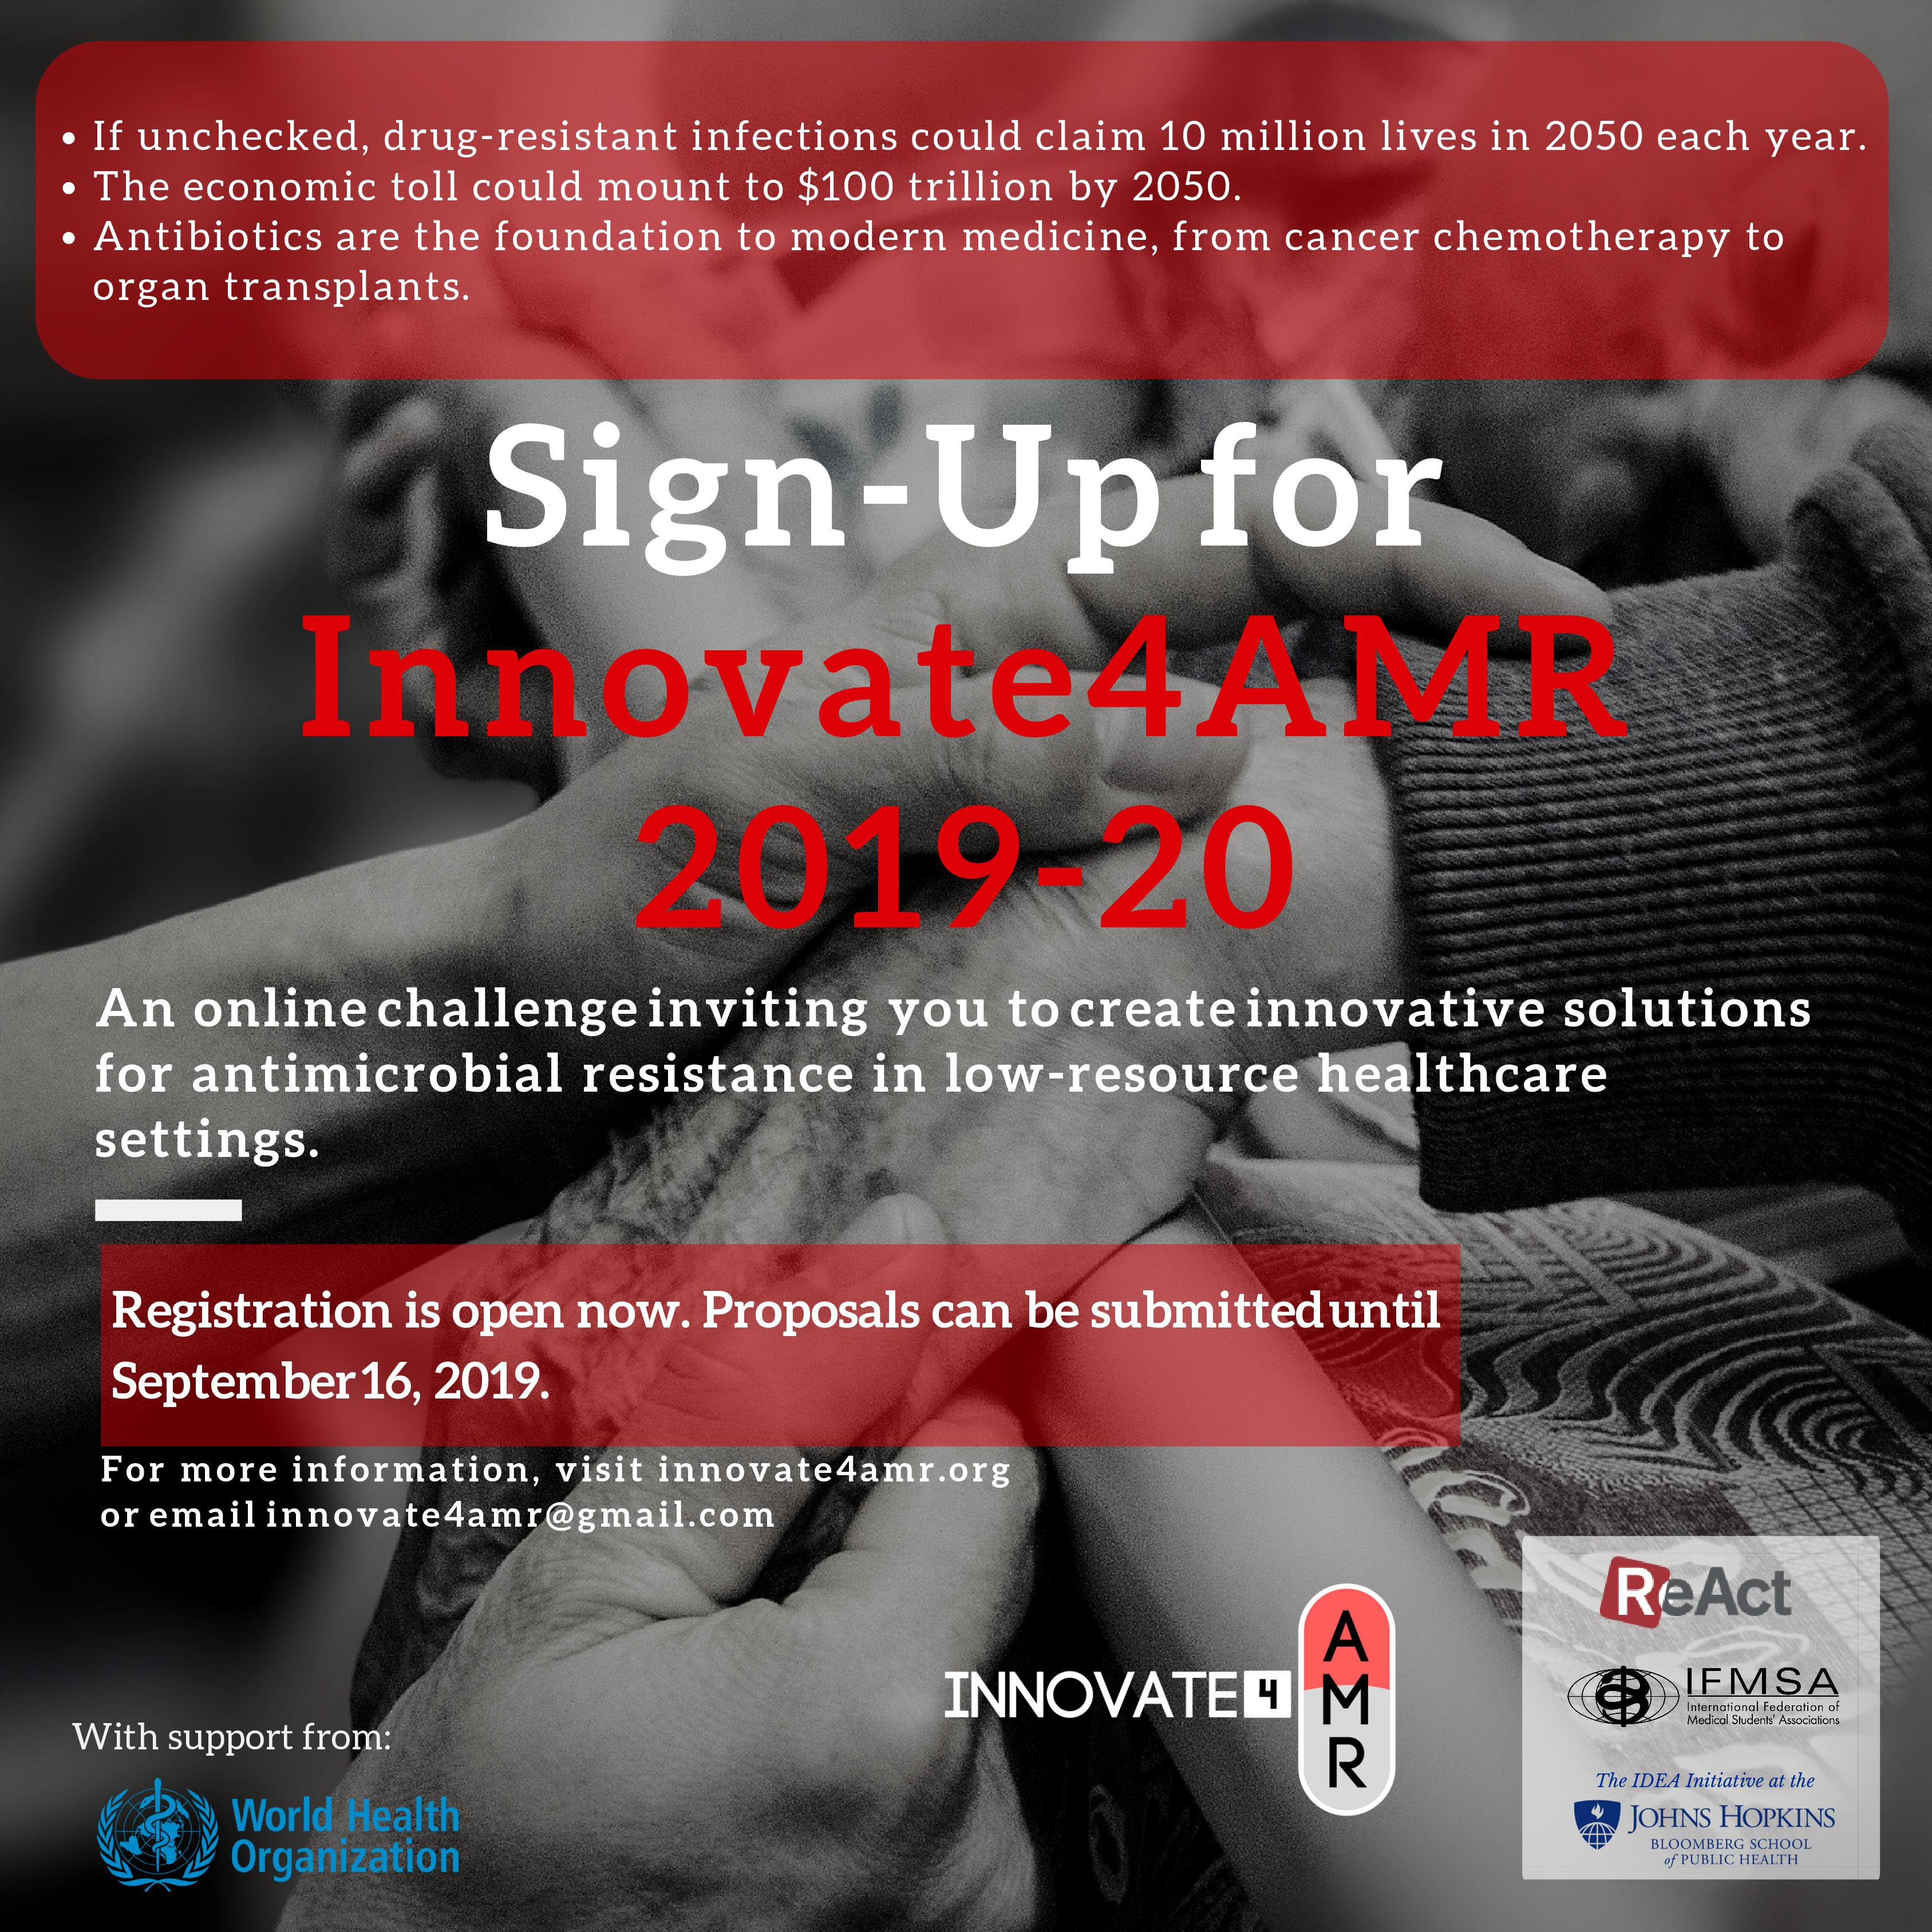 Sign up for Innovate4AMR!